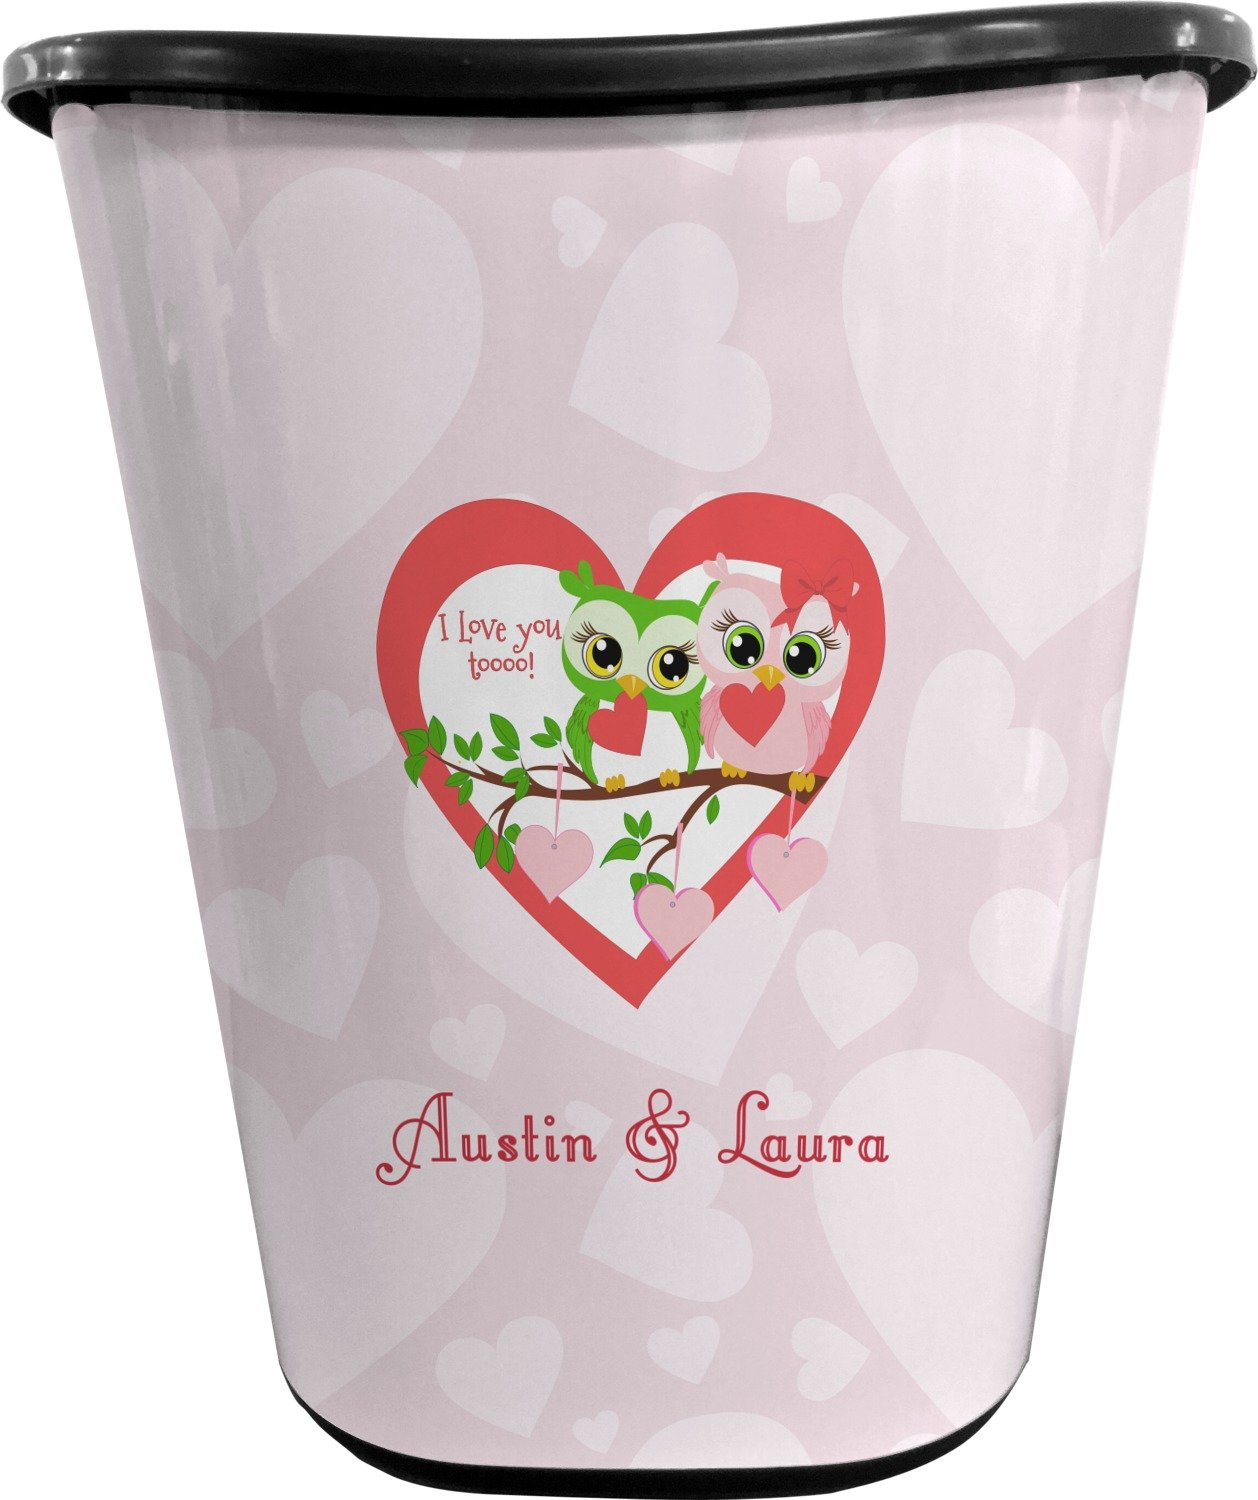 RNK Shops Valentine Owls Waste Basket - Double Sided (Black) (Personalized)